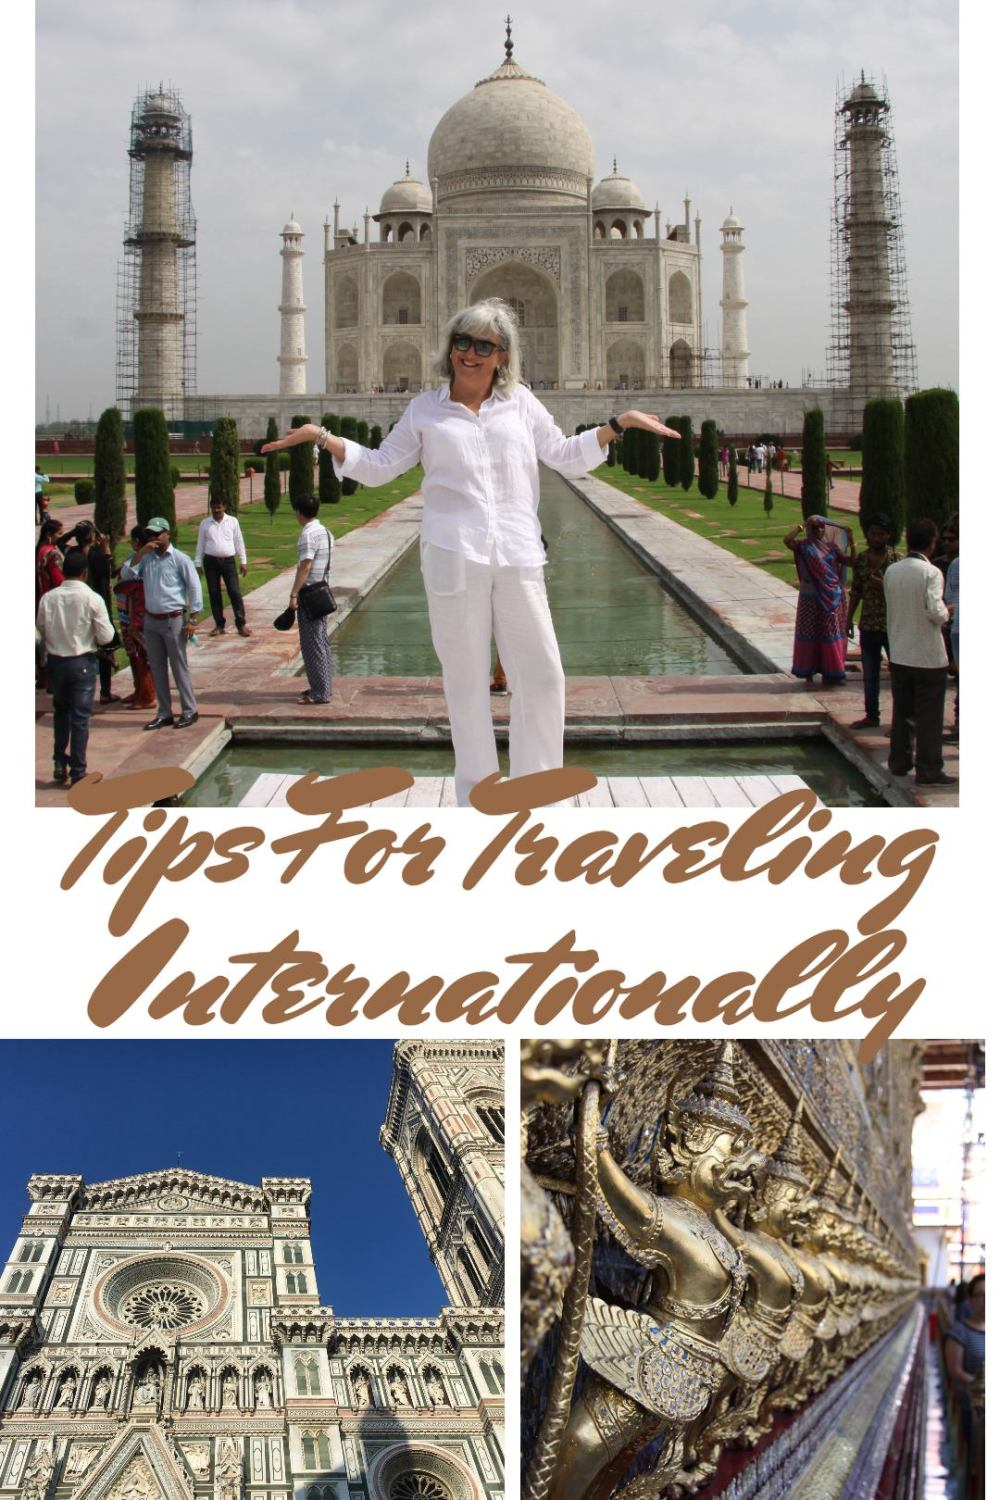 tips for traveling internationallhy